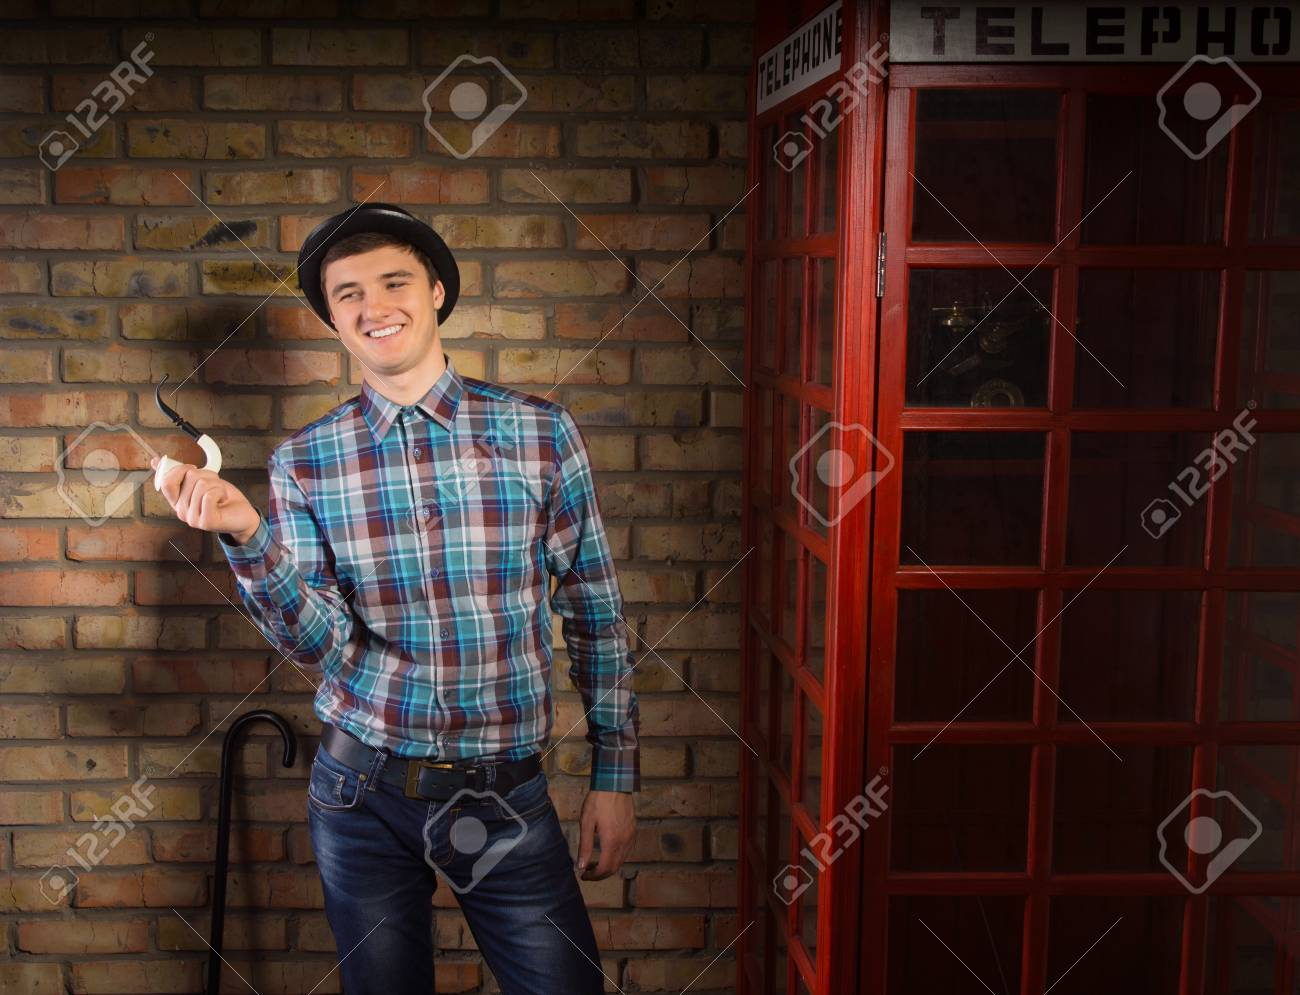 8eb06c5a10 Happy Young Handsome Man in Checkered Shirt and Jeans with Trendy Hat  Holding Smoking Pipe Near